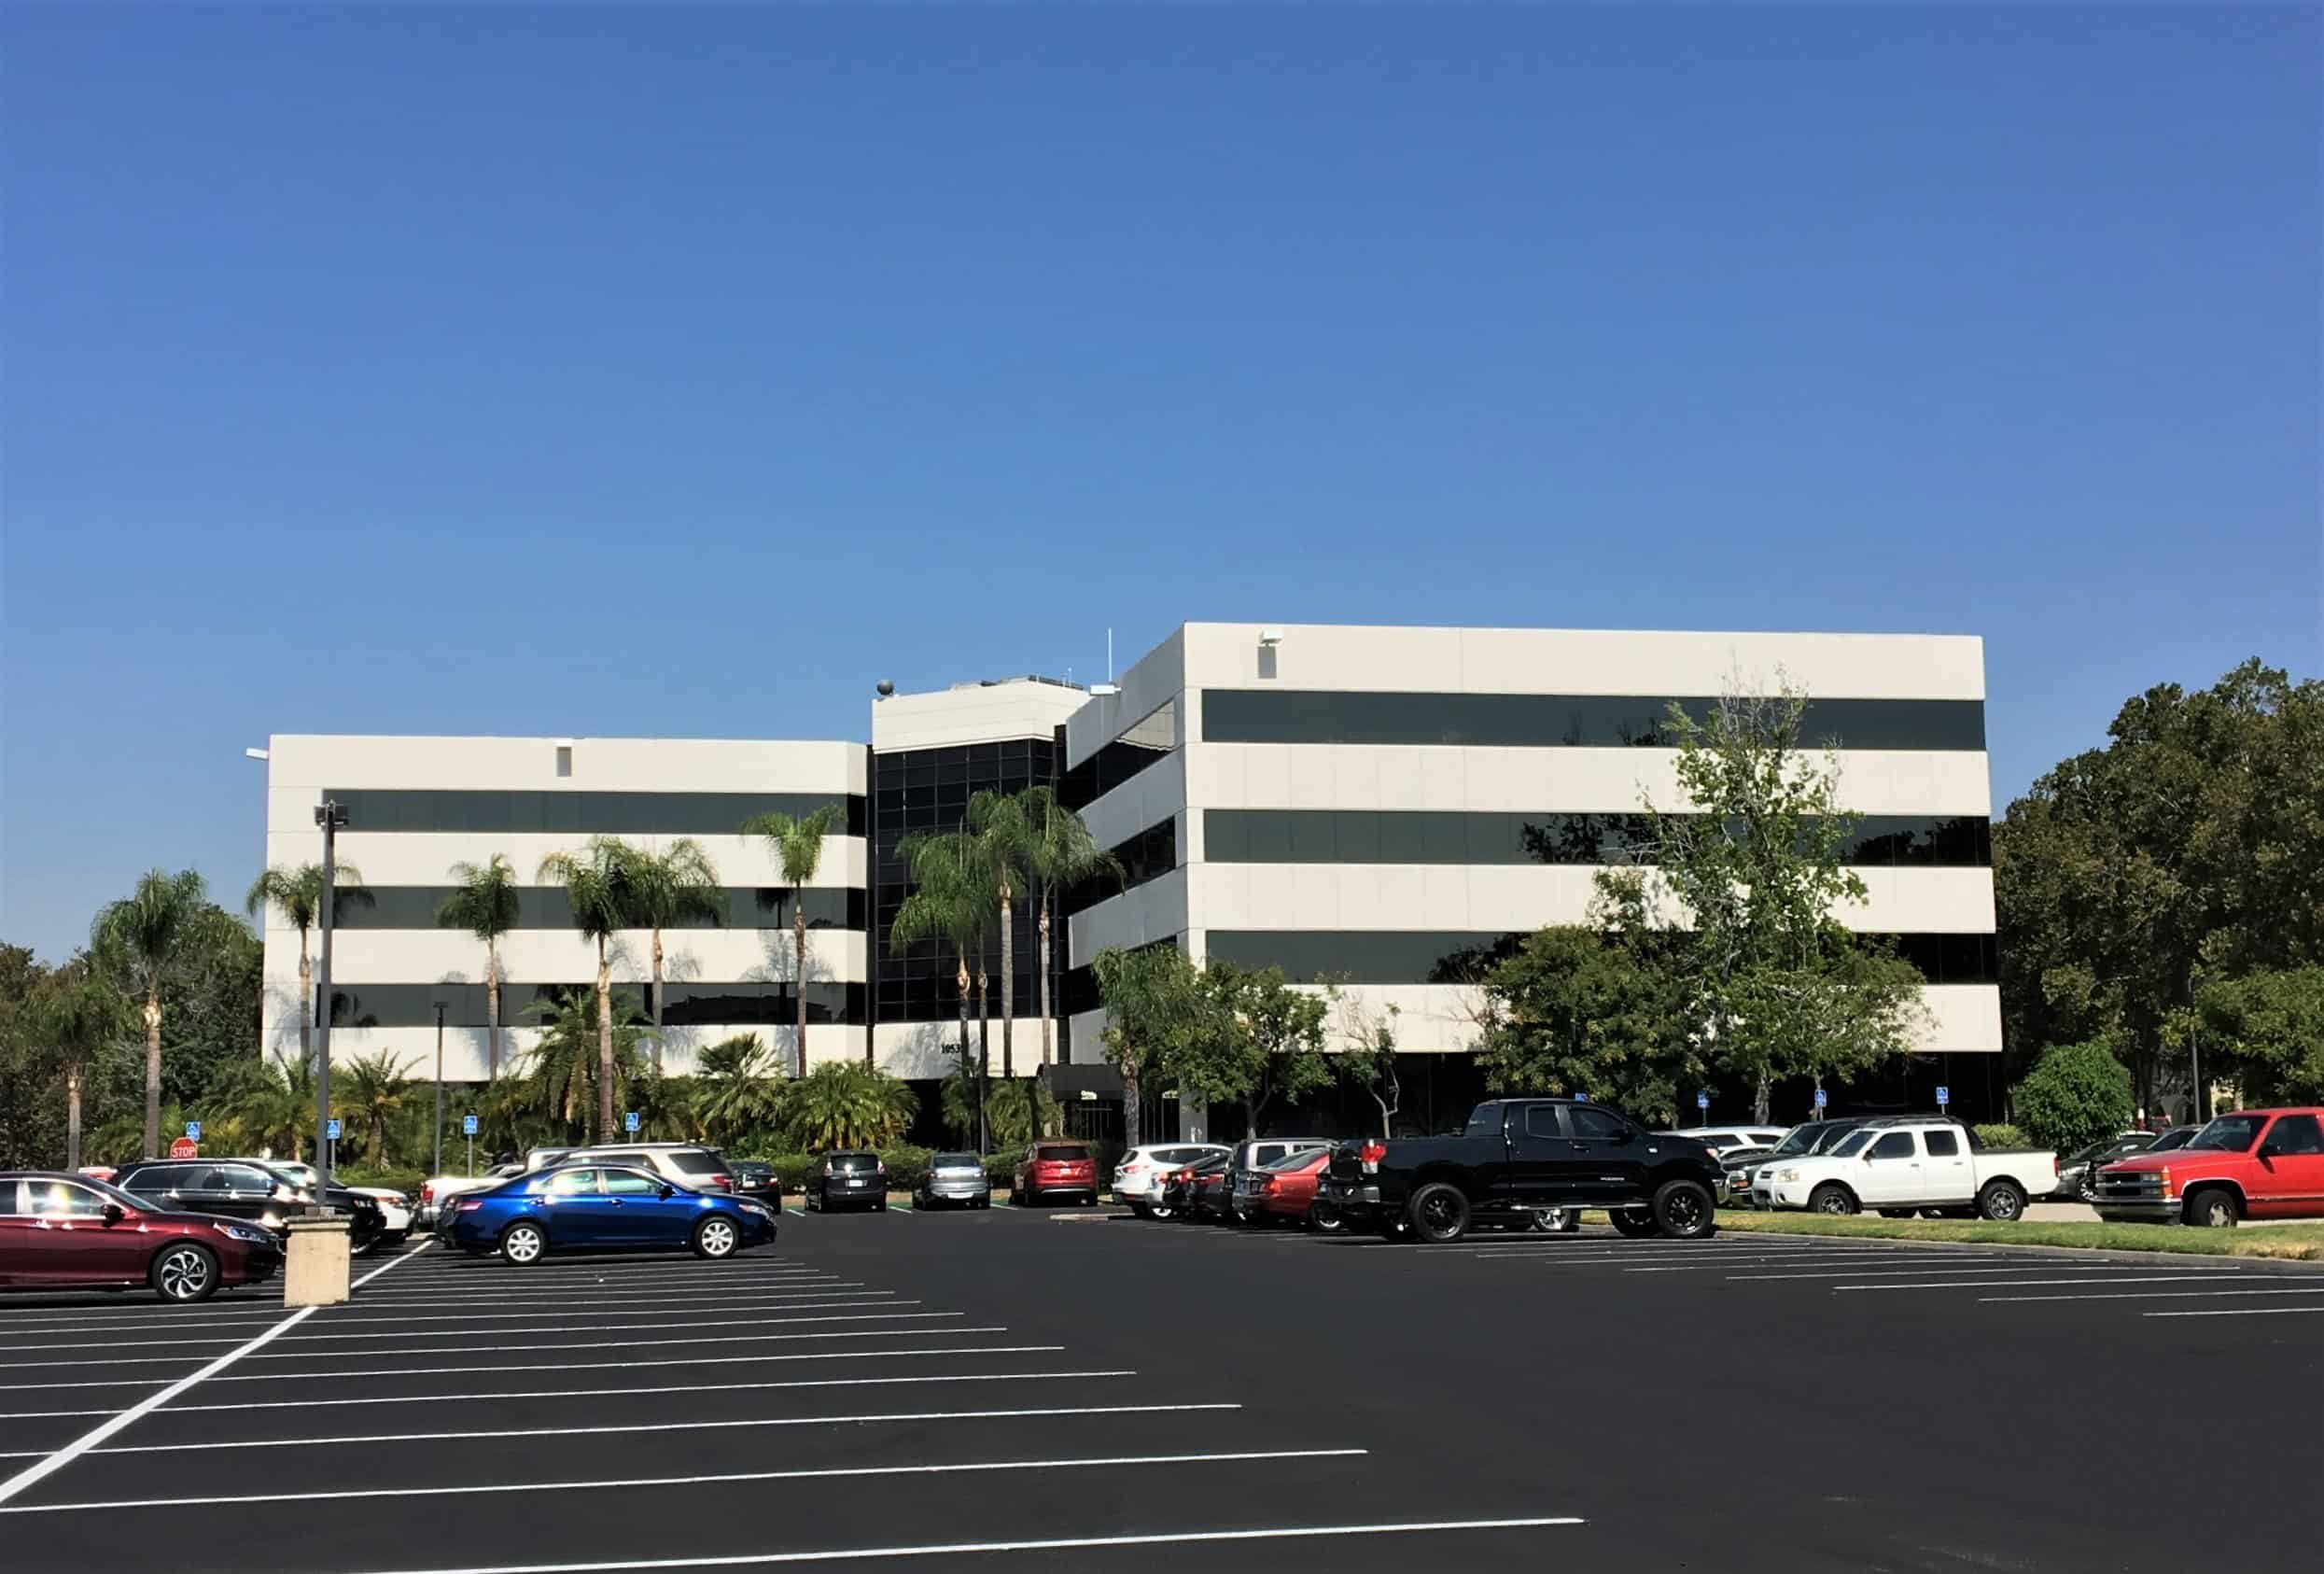 RE/MAX COMMERCIAL HEADQUARTERS IN RANCHO CUCAMONGA CA